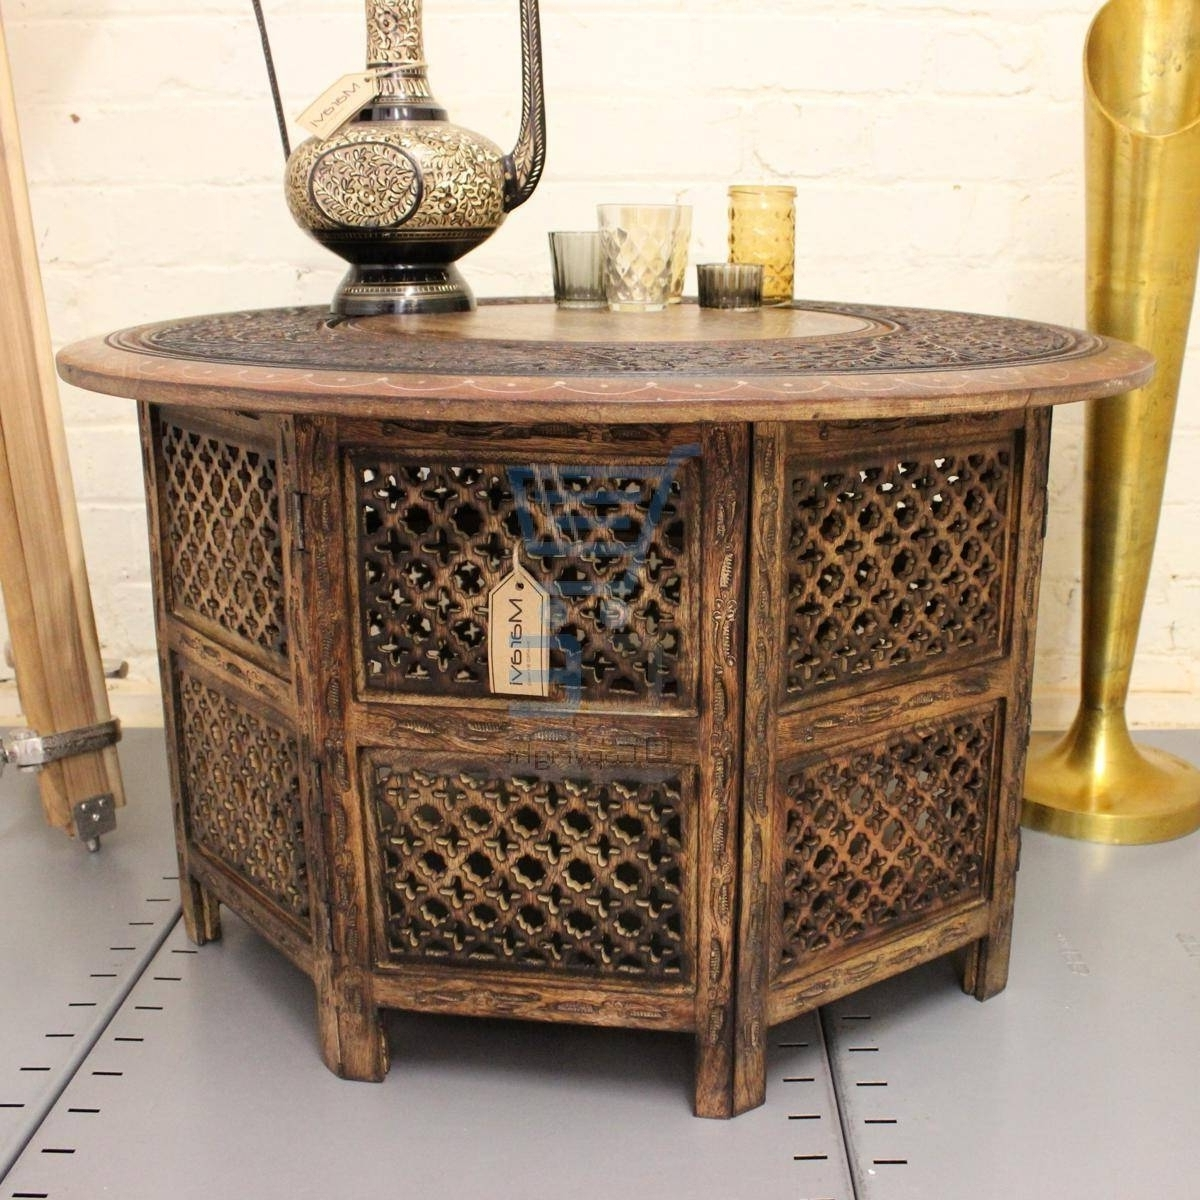 Widely Used Round Carved Wood Coffee Tables With Regard To Carved Wood Coffee Table Round – Wooden Home Design (View 5 of 20)